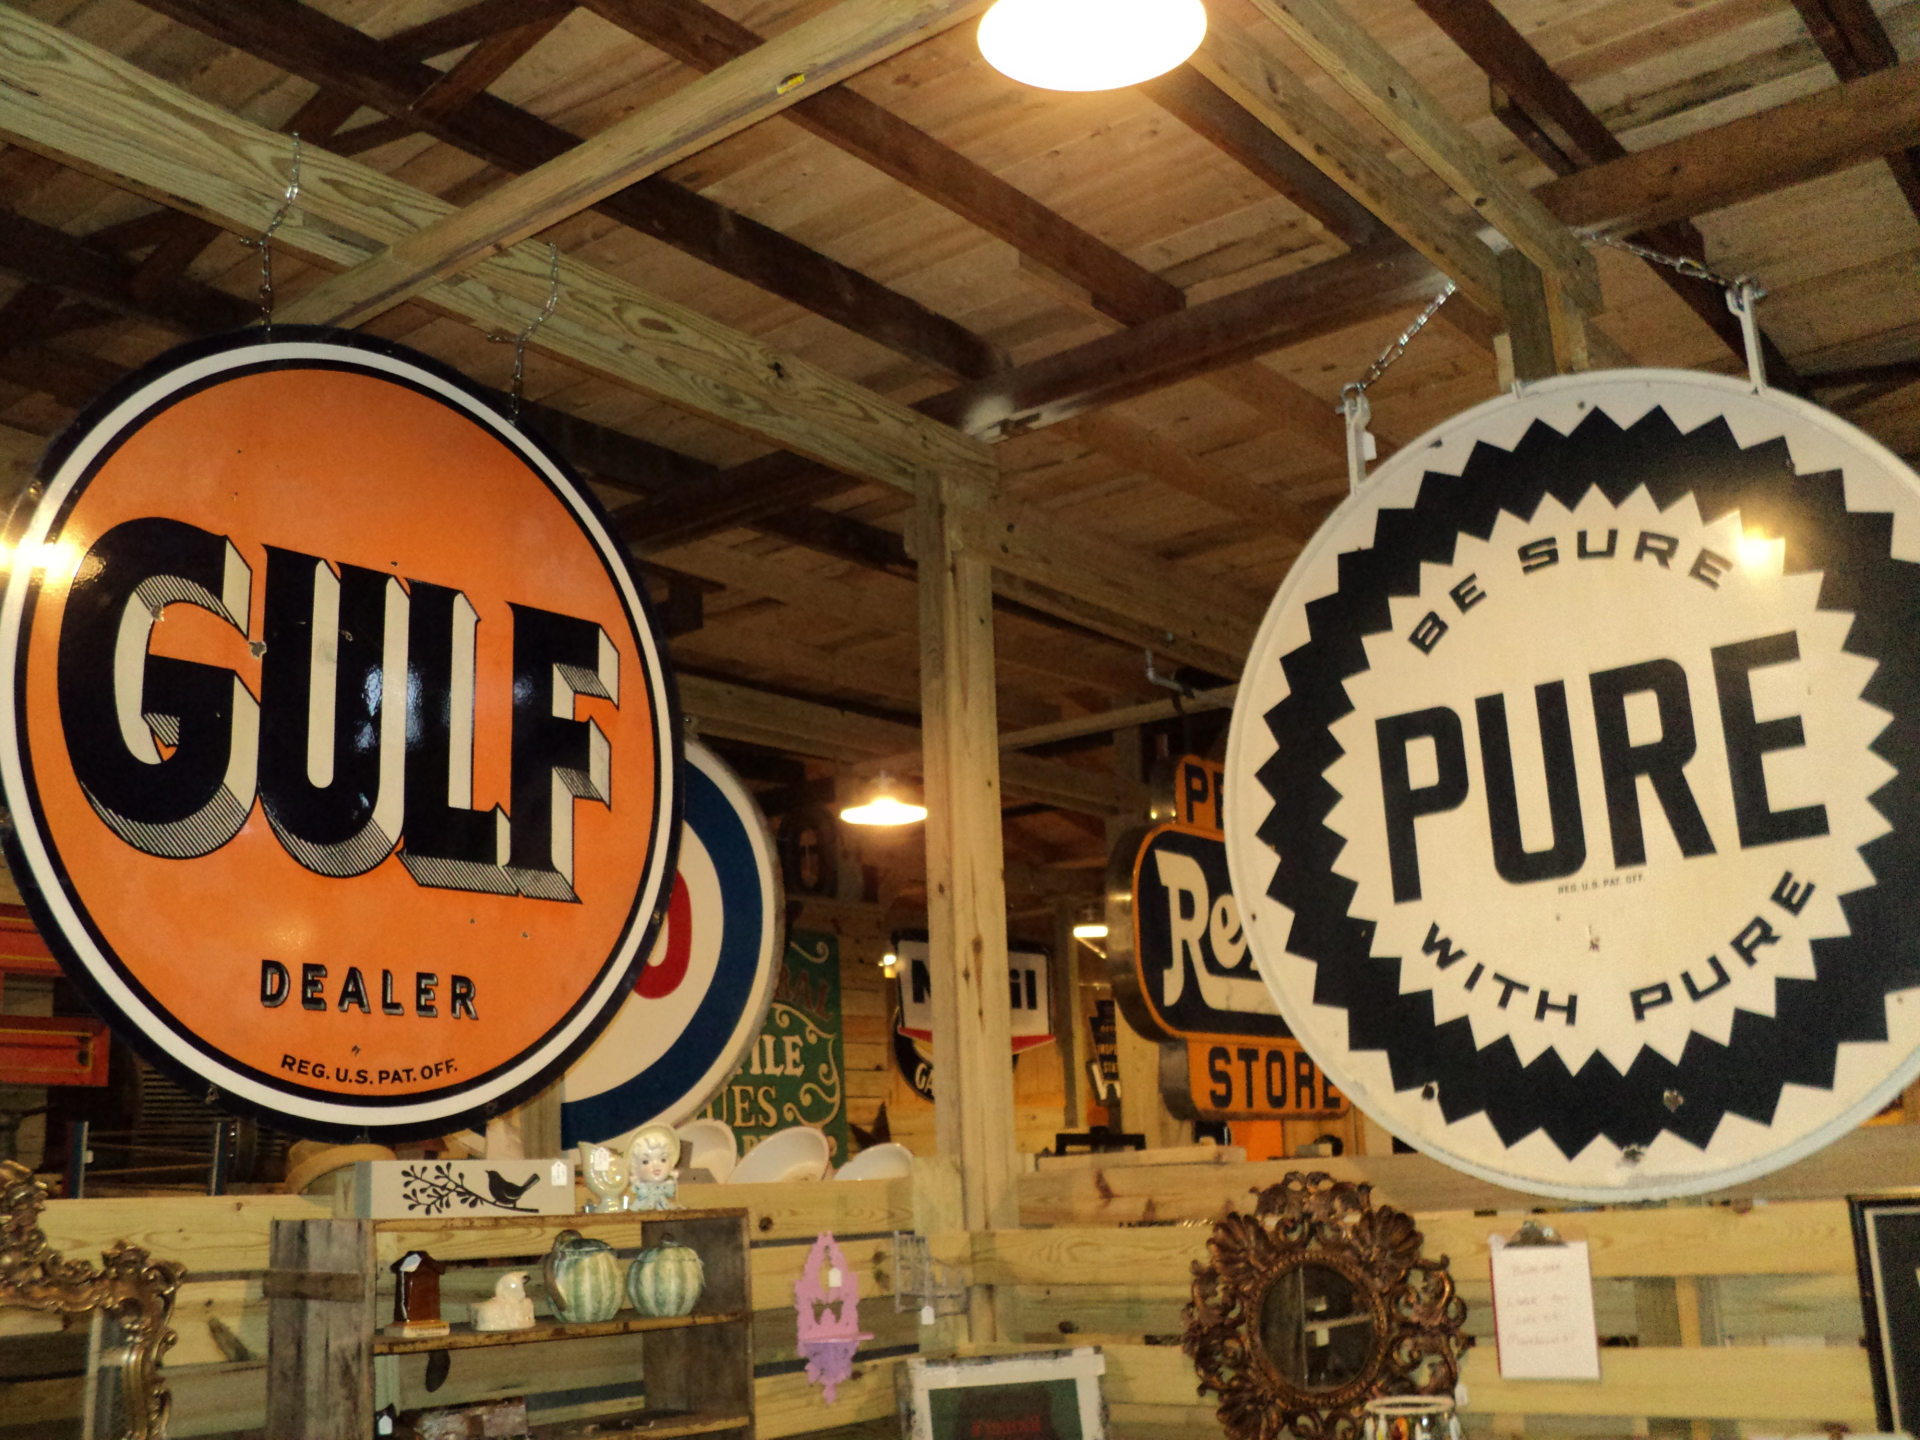 Gulf Dealer and Pure Sign